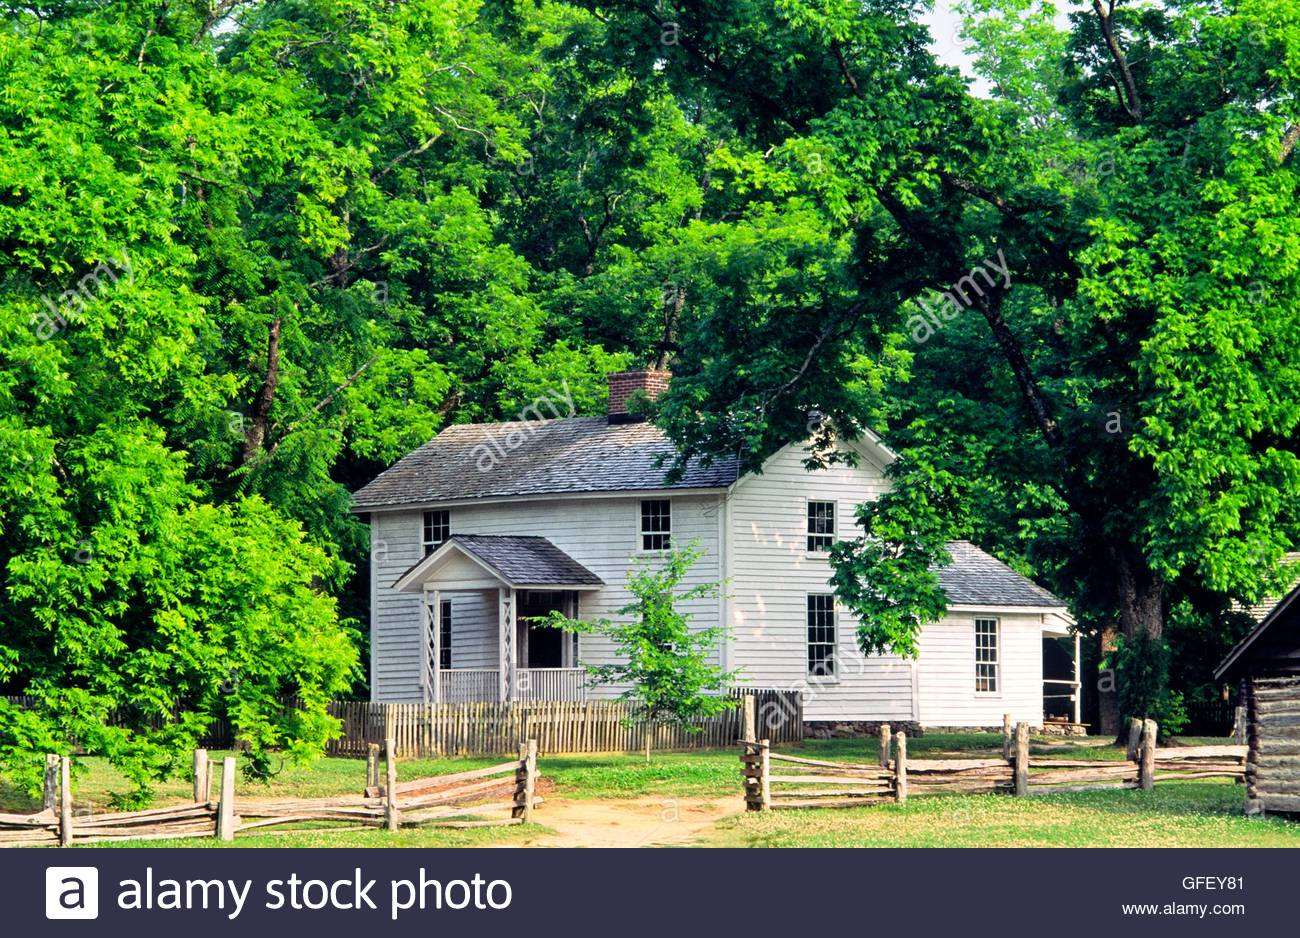 The historic farmhouse at the Duke Homestead and Tobacco Museum dates from 1852. Durham, N. Carolina, USA - Stock Image